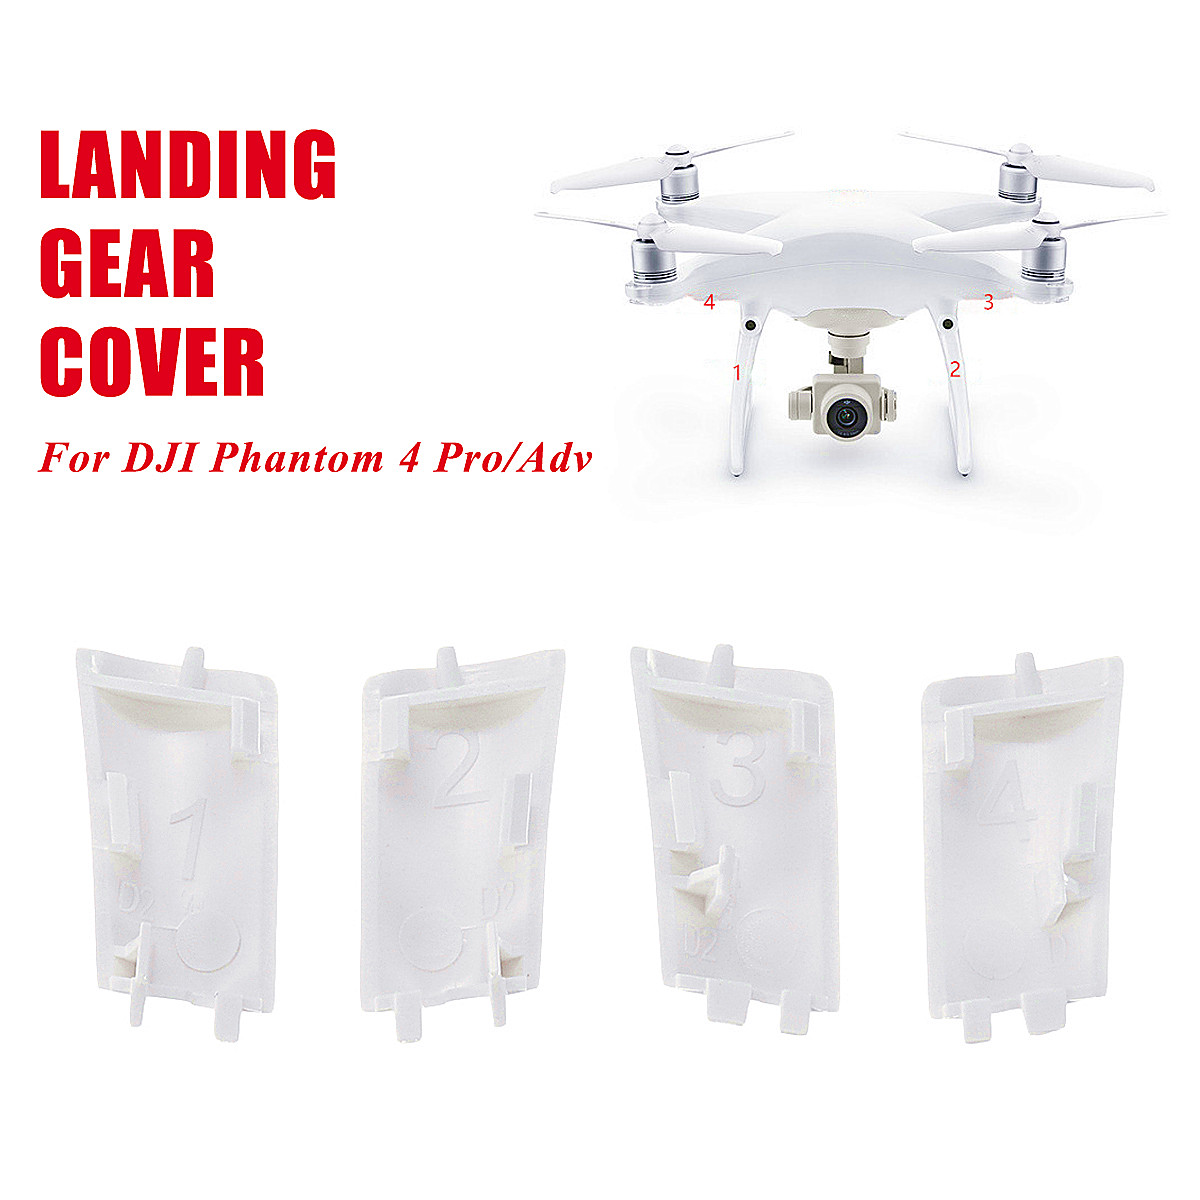 1Set 4Pcs Landing Gear Cover Case Repair PartsBody Shell Repair Spare Parts For DJI For Phantom 4 Pro/Adv Drone New Arrival1Set 4Pcs Landing Gear Cover Case Repair PartsBody Shell Repair Spare Parts For DJI For Phantom 4 Pro/Adv Drone New Arrival